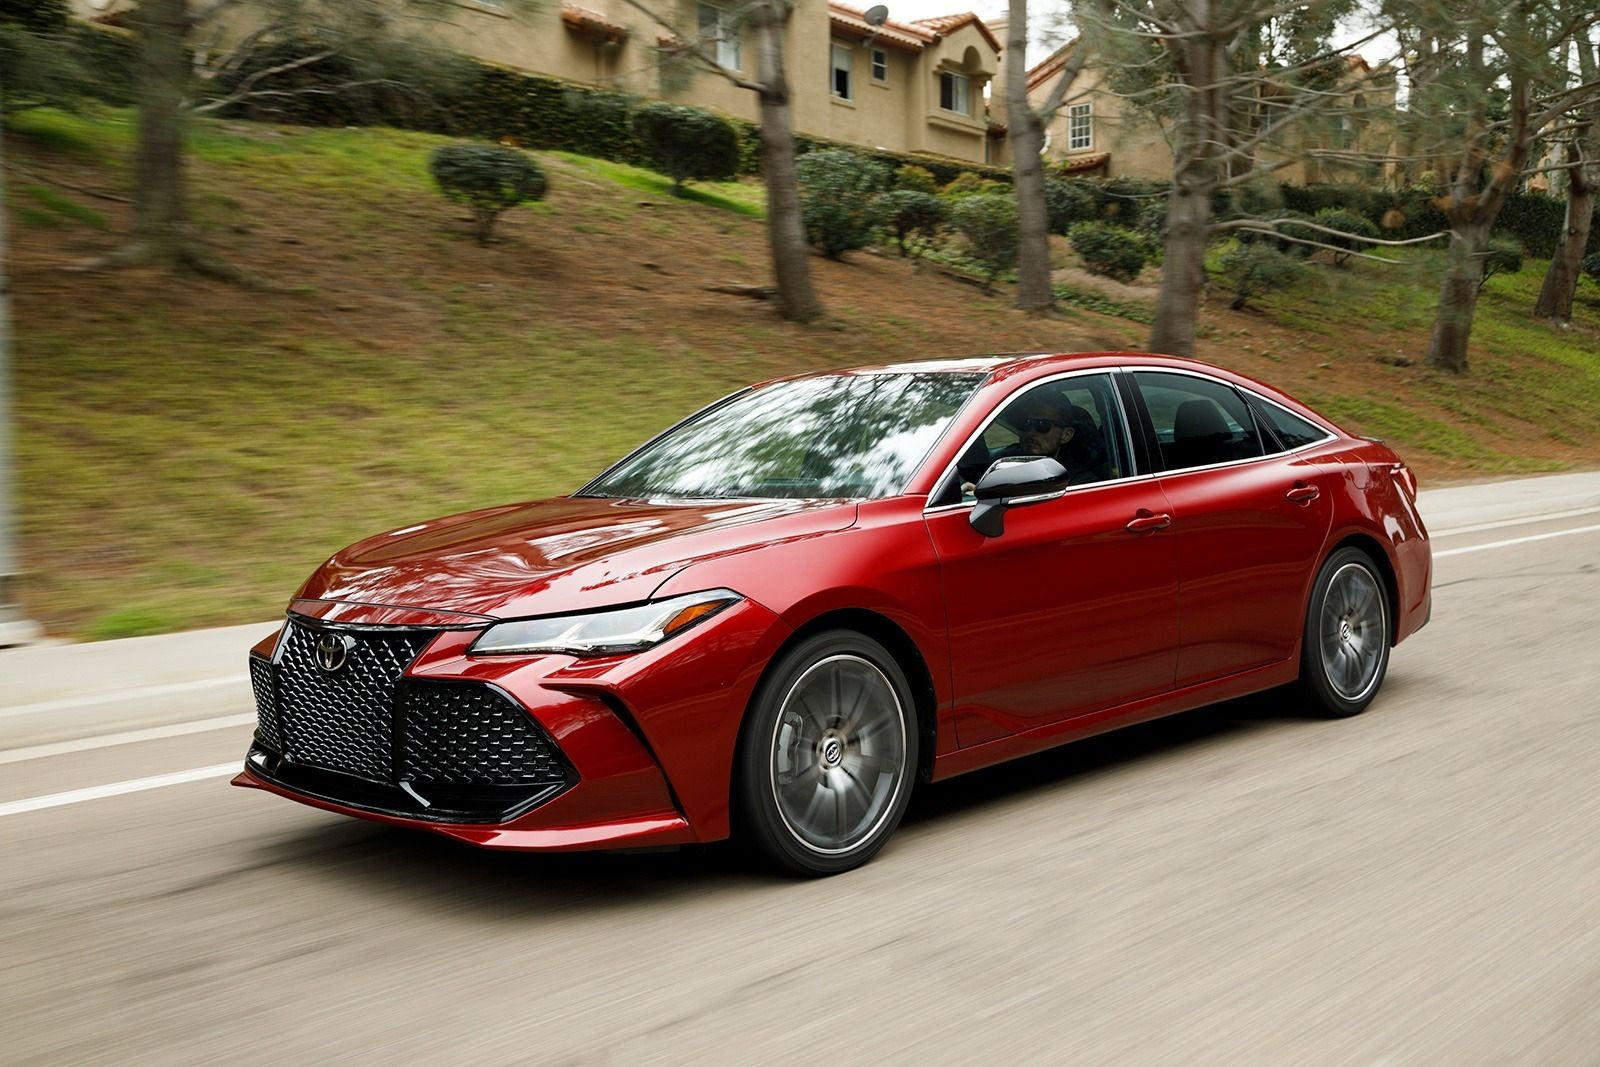 2019 Toyota Avalon Exterior Colors Redesign Price And Review